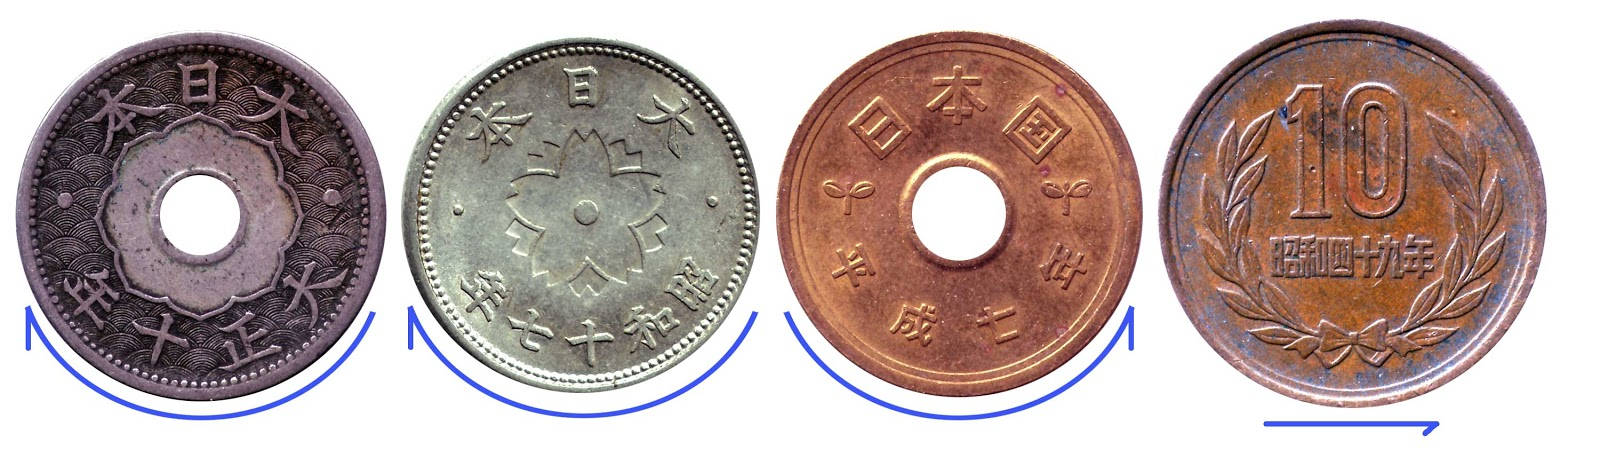 How Much Is A Chinese Coin Worth In America November 2019